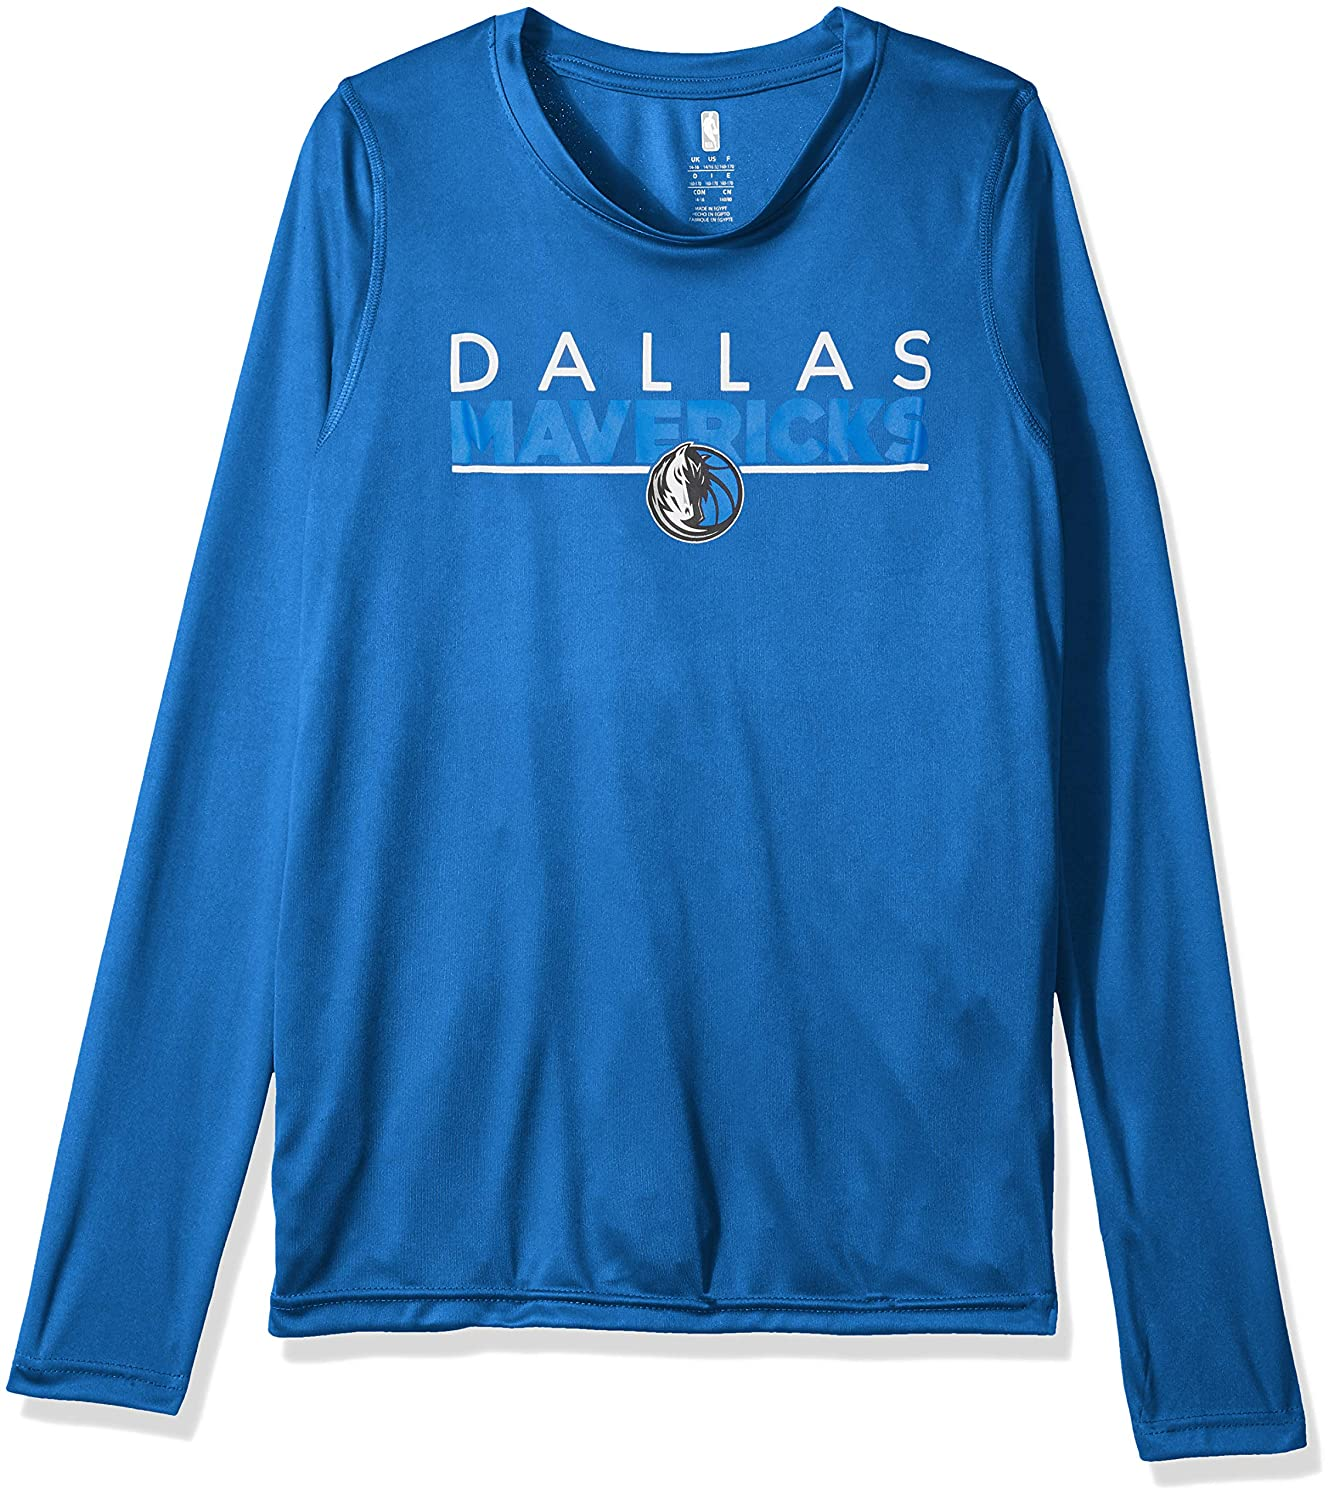 14-16 Strong Blue Youth Large Outerstuff NBA NBA Youth Boys Dallas Mavericks Tactical Stance Long Sleeve Performance Tee